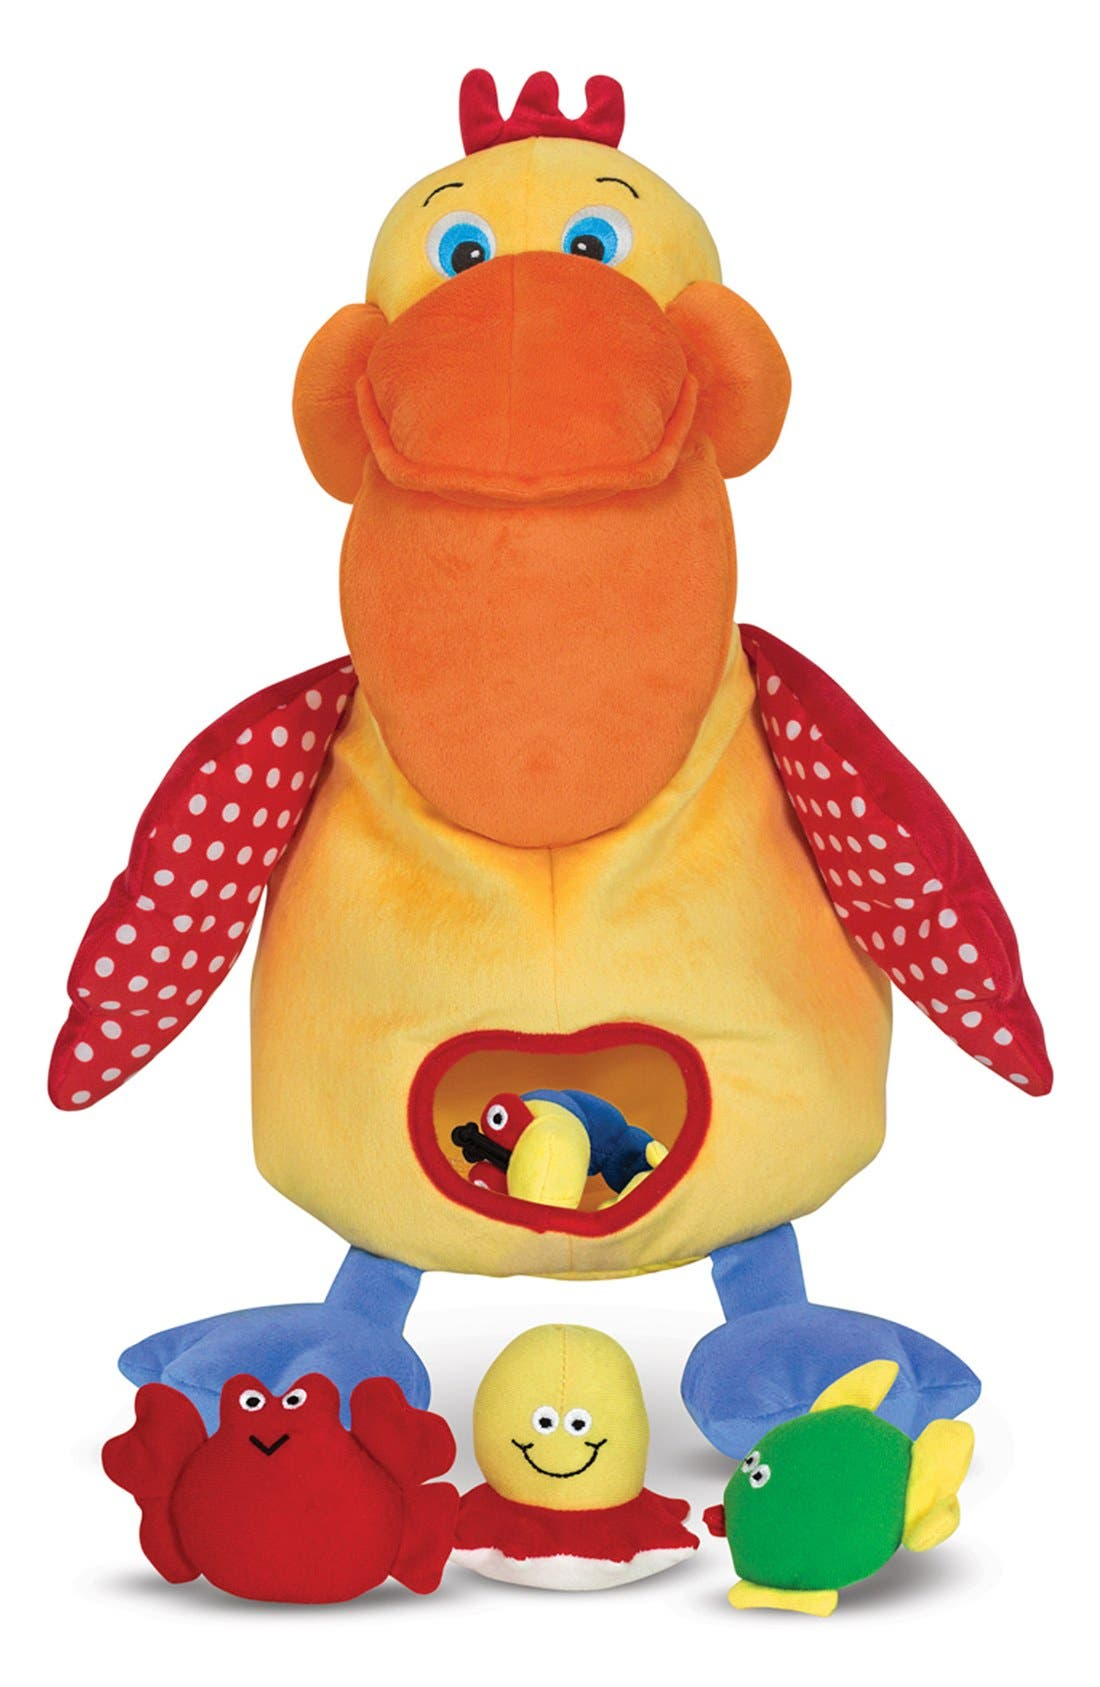 'Hungry Pelican' Plush Toy,                             Main thumbnail 1, color,                             YELLOW